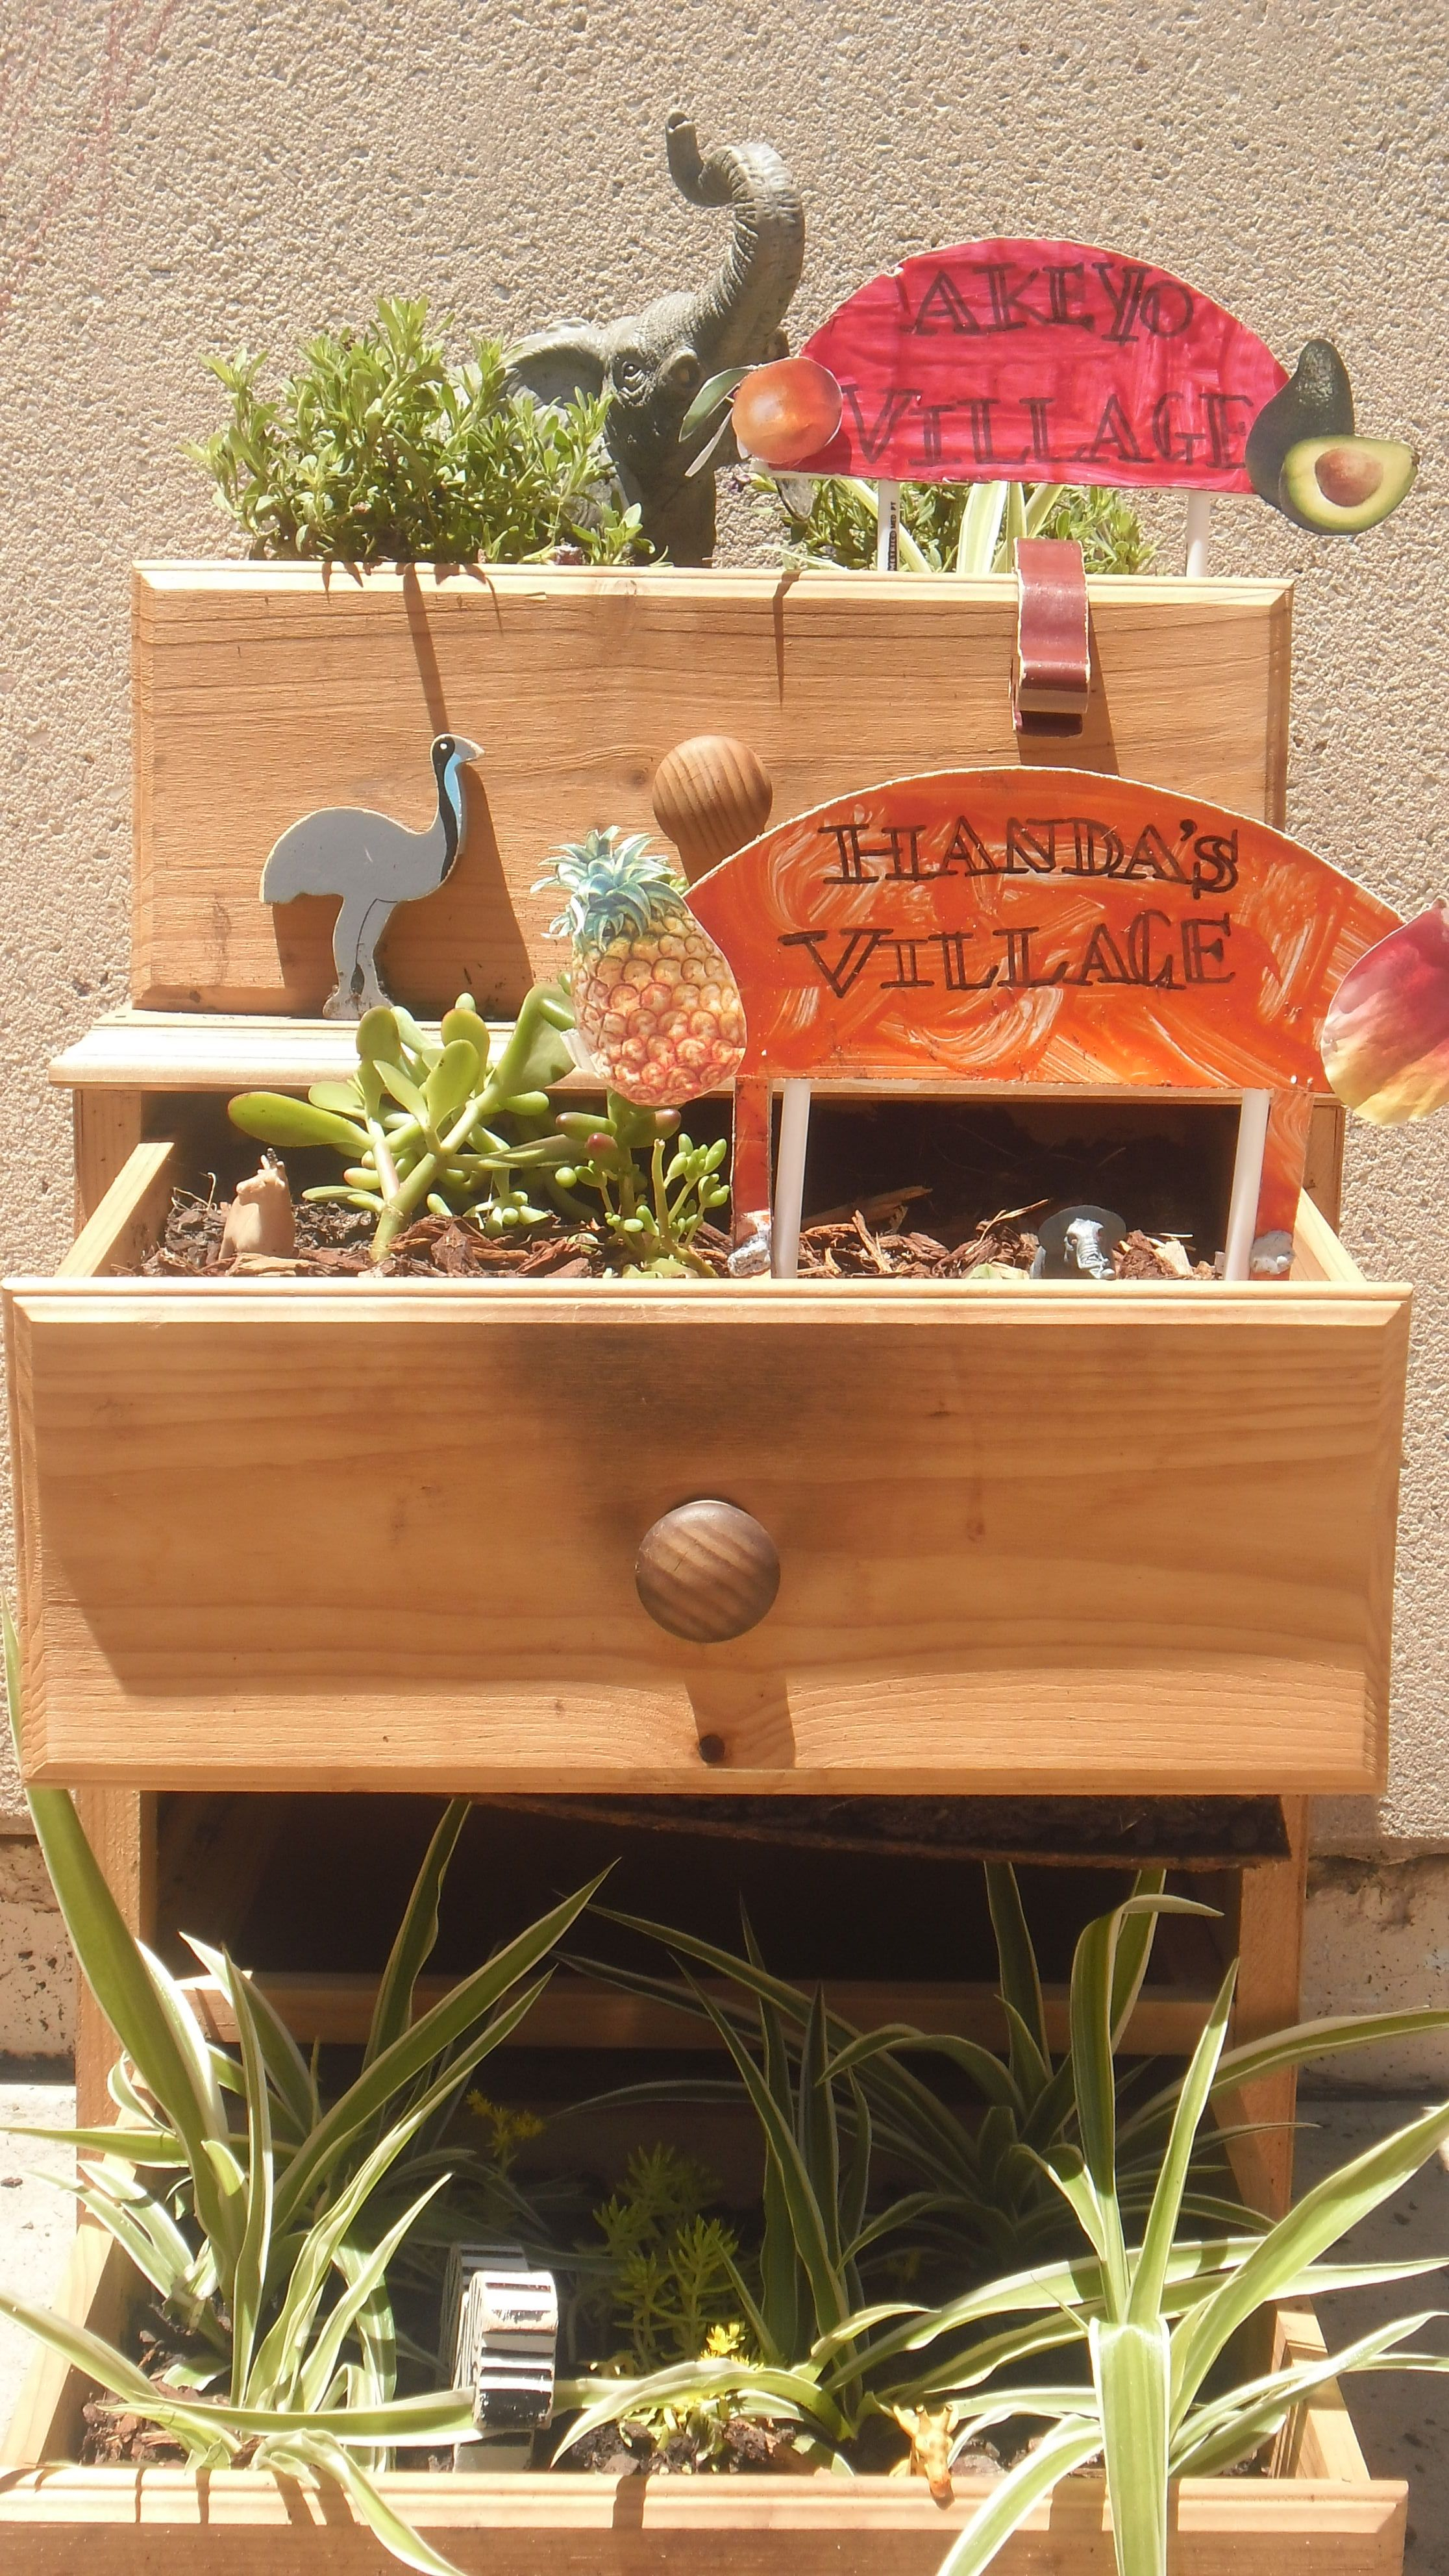 5 This storybook garden comp entry was made by toddlers (aged 2-3 ...